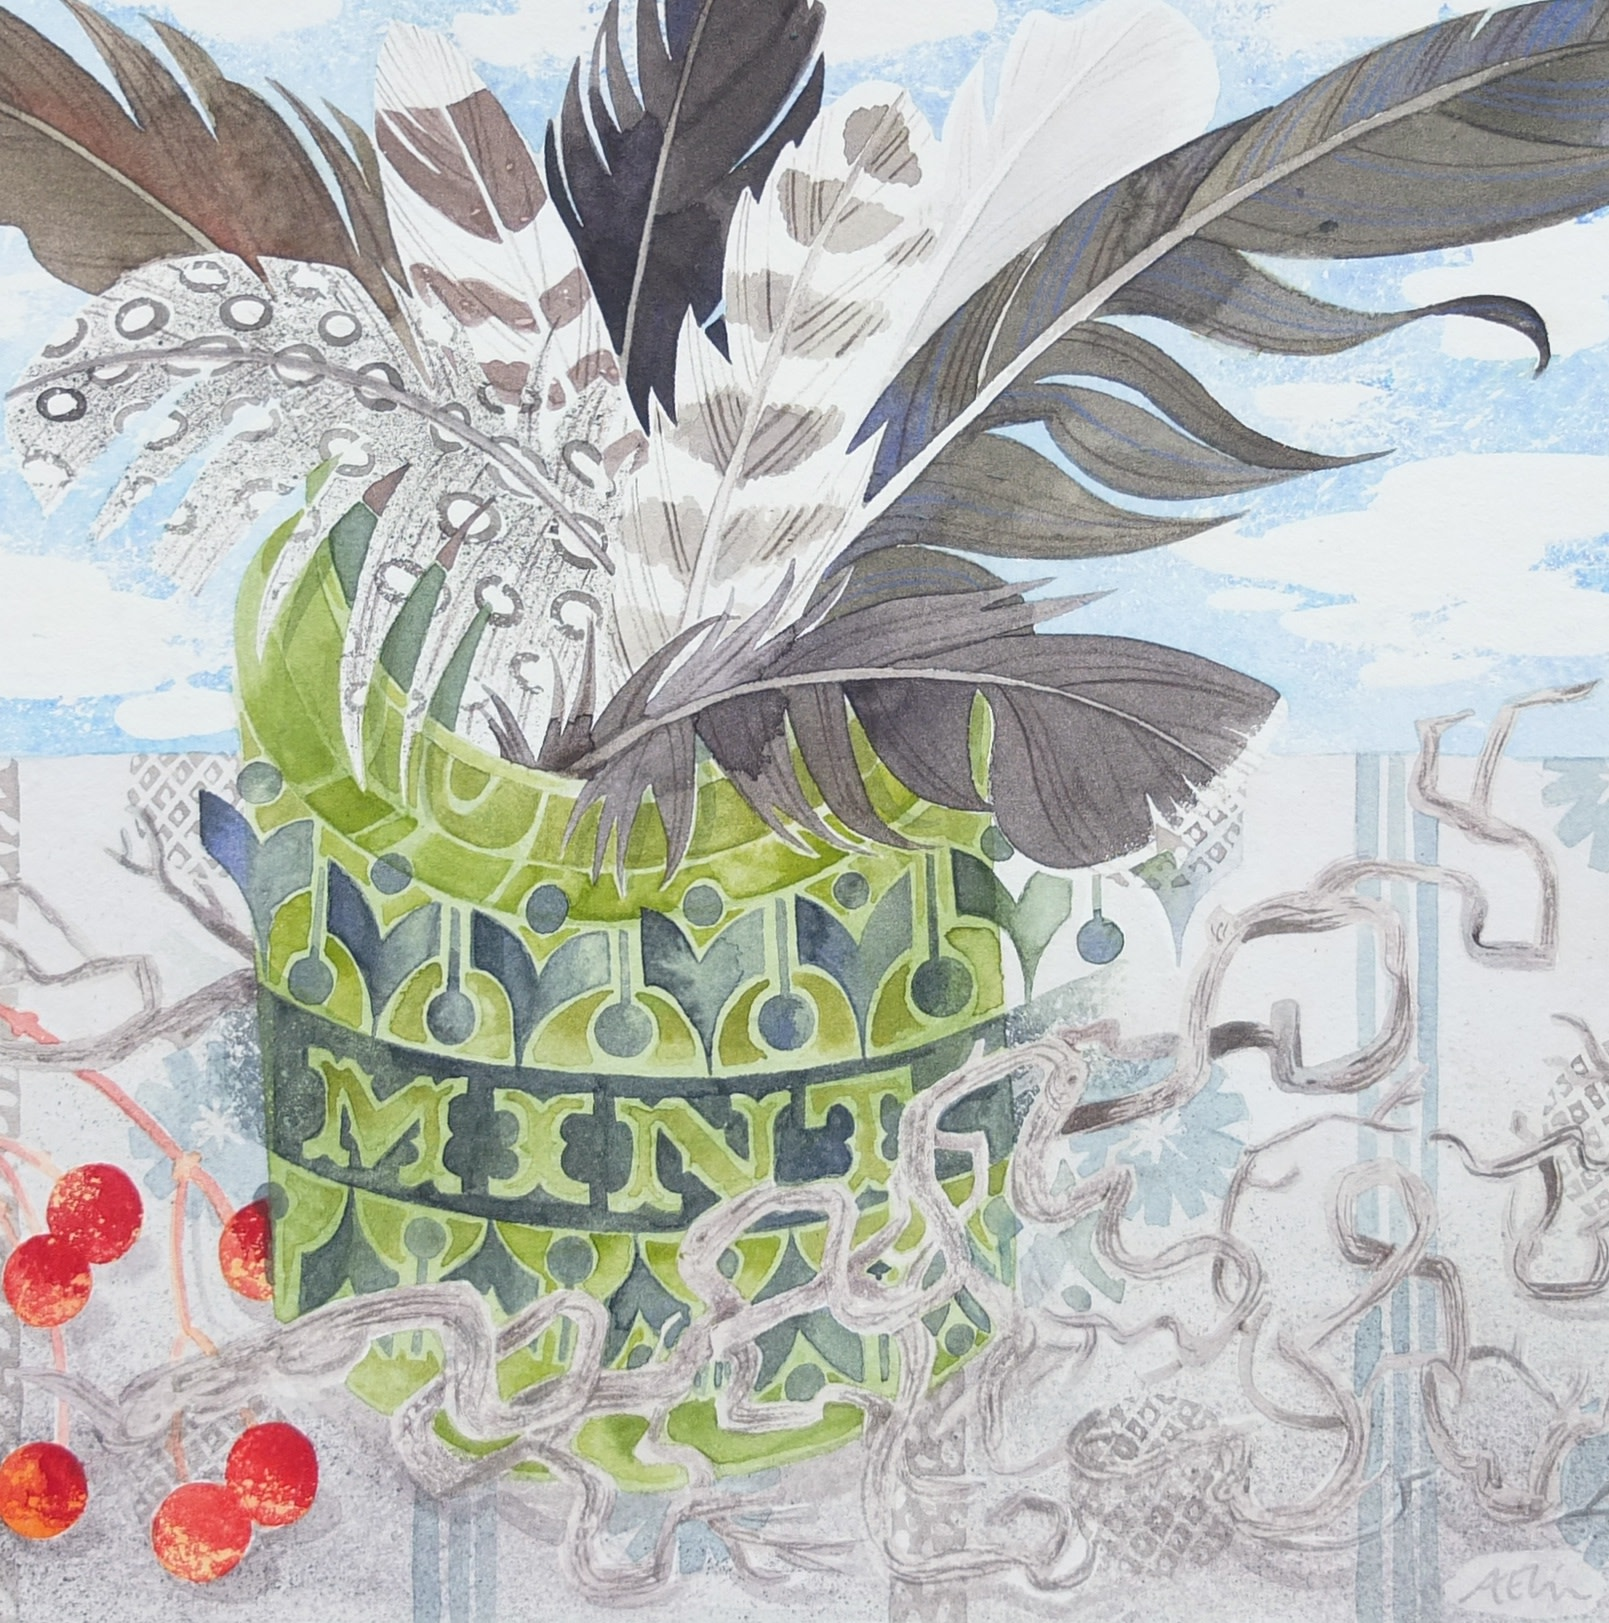 """<span class=""""link fancybox-details-link""""><a href=""""/artists/129-angie-lewin/works/12403-angie-lewin-green-jar-with-red-berries-and-feathers/"""">View Detail Page</a></span><div class=""""artist""""><span class=""""artist""""><strong>Angie Lewin</strong></span></div><div class=""""title""""><em>Green Jar with Red Berries and Feathers</em></div><div class=""""medium"""">watercolour</div><div class=""""dimensions"""">Frame: 39 x 38 cm<br /> Artwork: 20 x 20 cm</div><div class=""""price"""">£525.00</div>"""